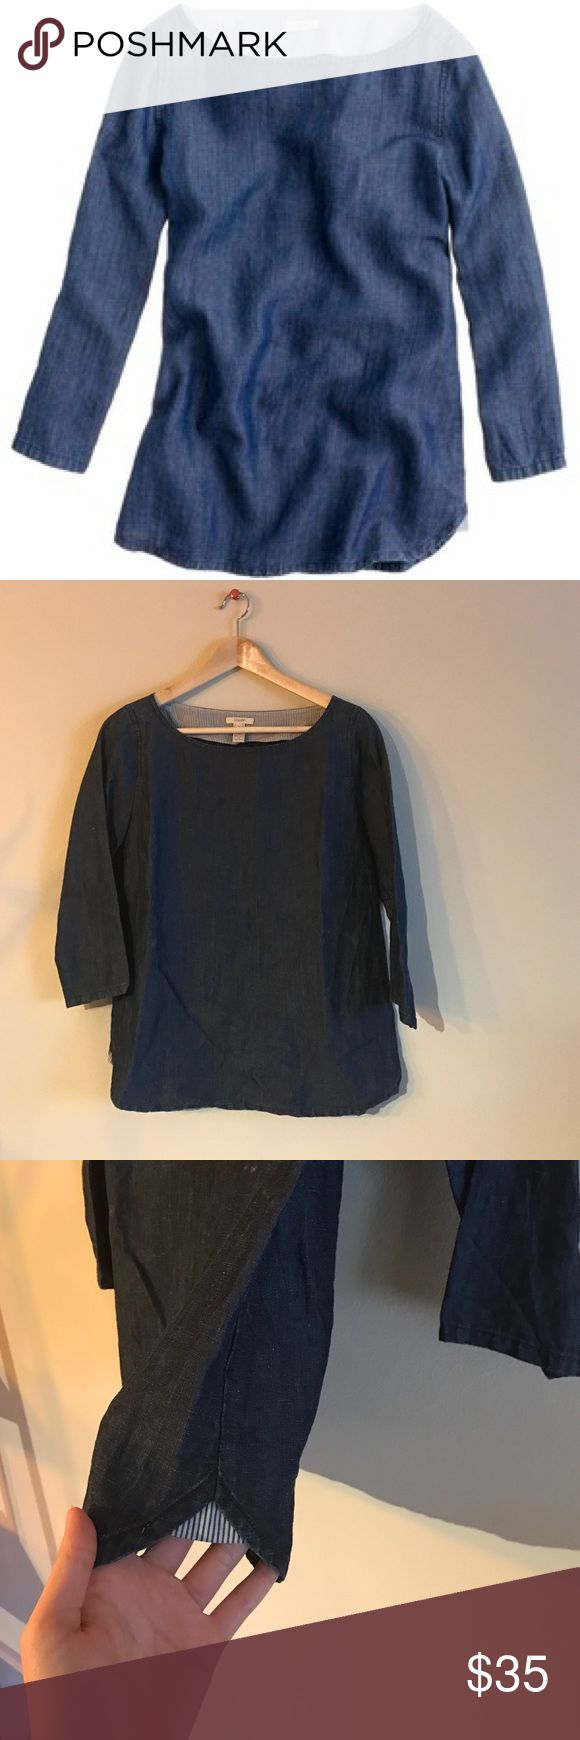 Chambray Top Great condition, I love this top but it doesn't fit me anymore! It's been sitting in storage and would be happy to go to a new home. i've only worn it twice. J. Crew Tops